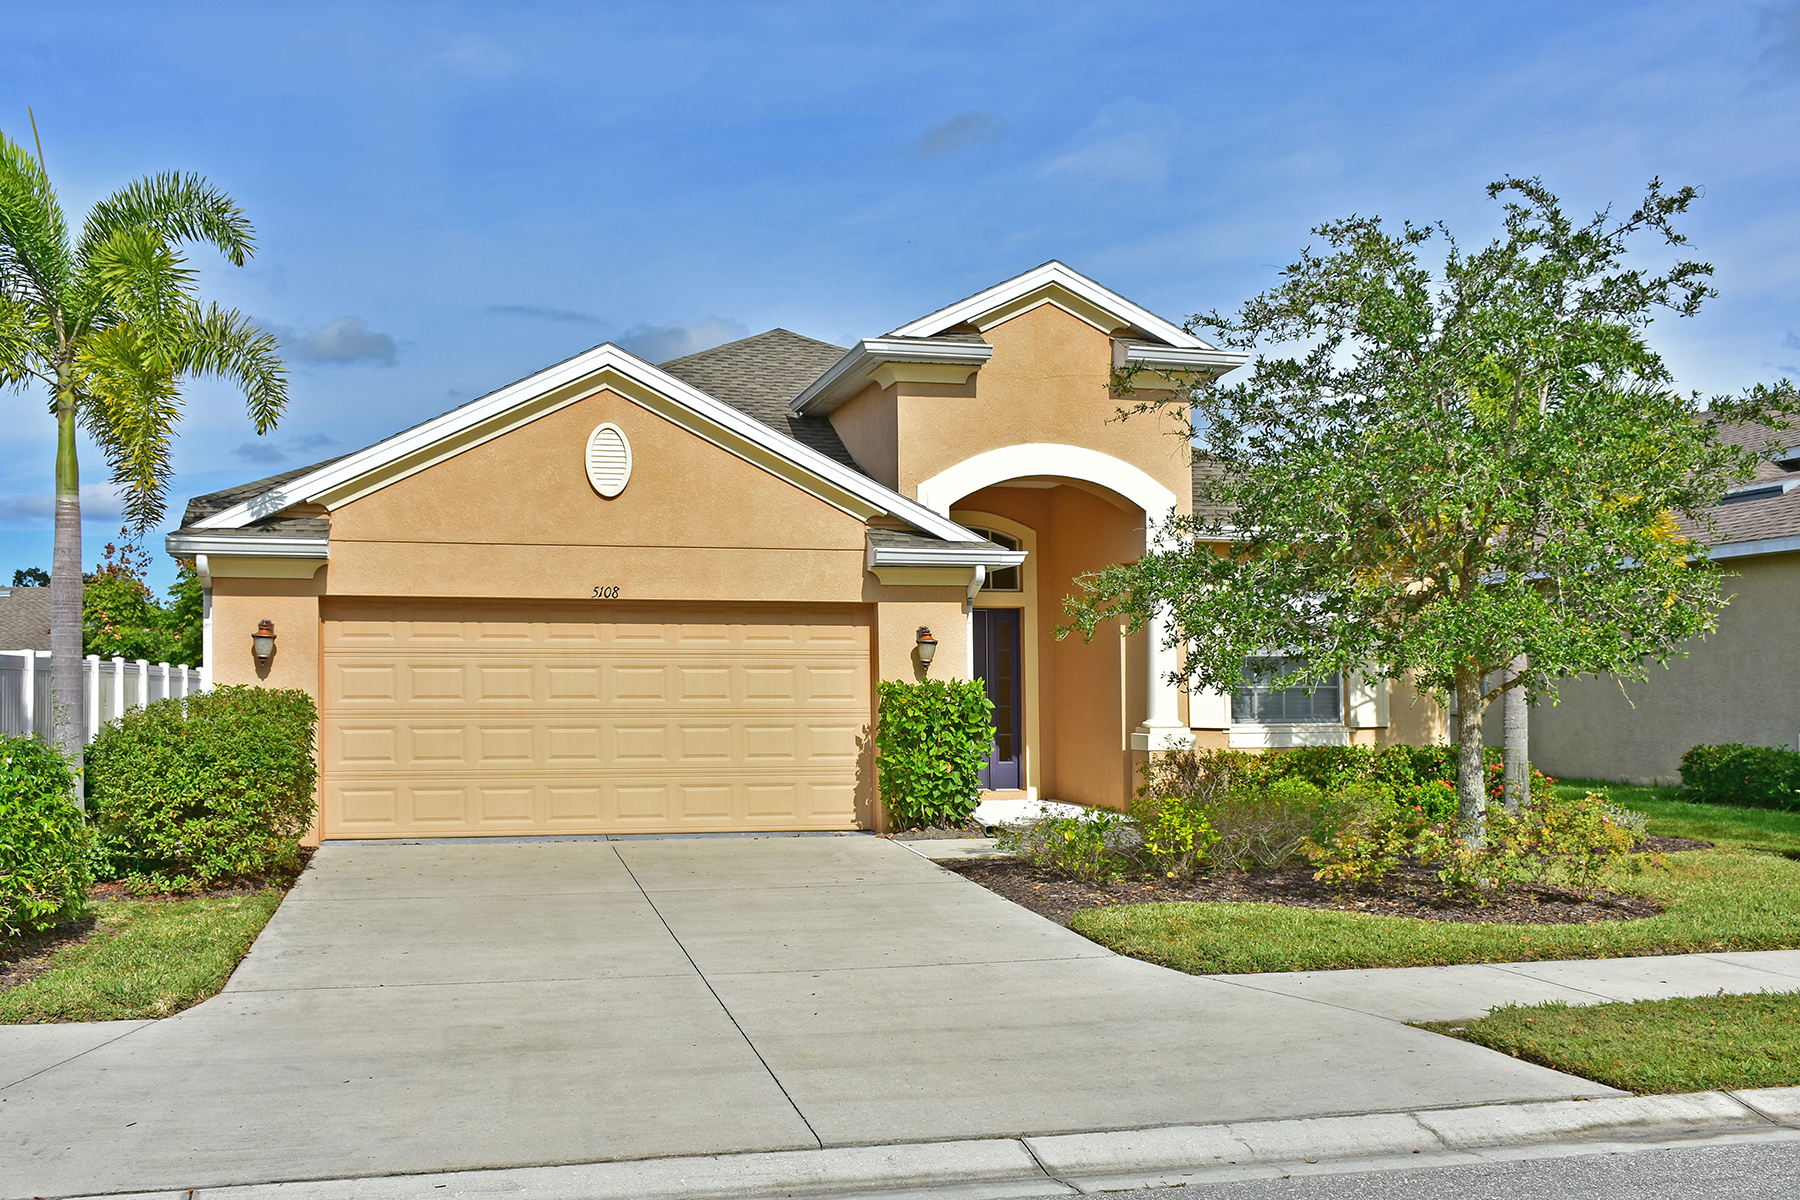 Single Family Home for Sale at PALMETTO 5108 72nd St E Palmetto, Florida 34221 United States